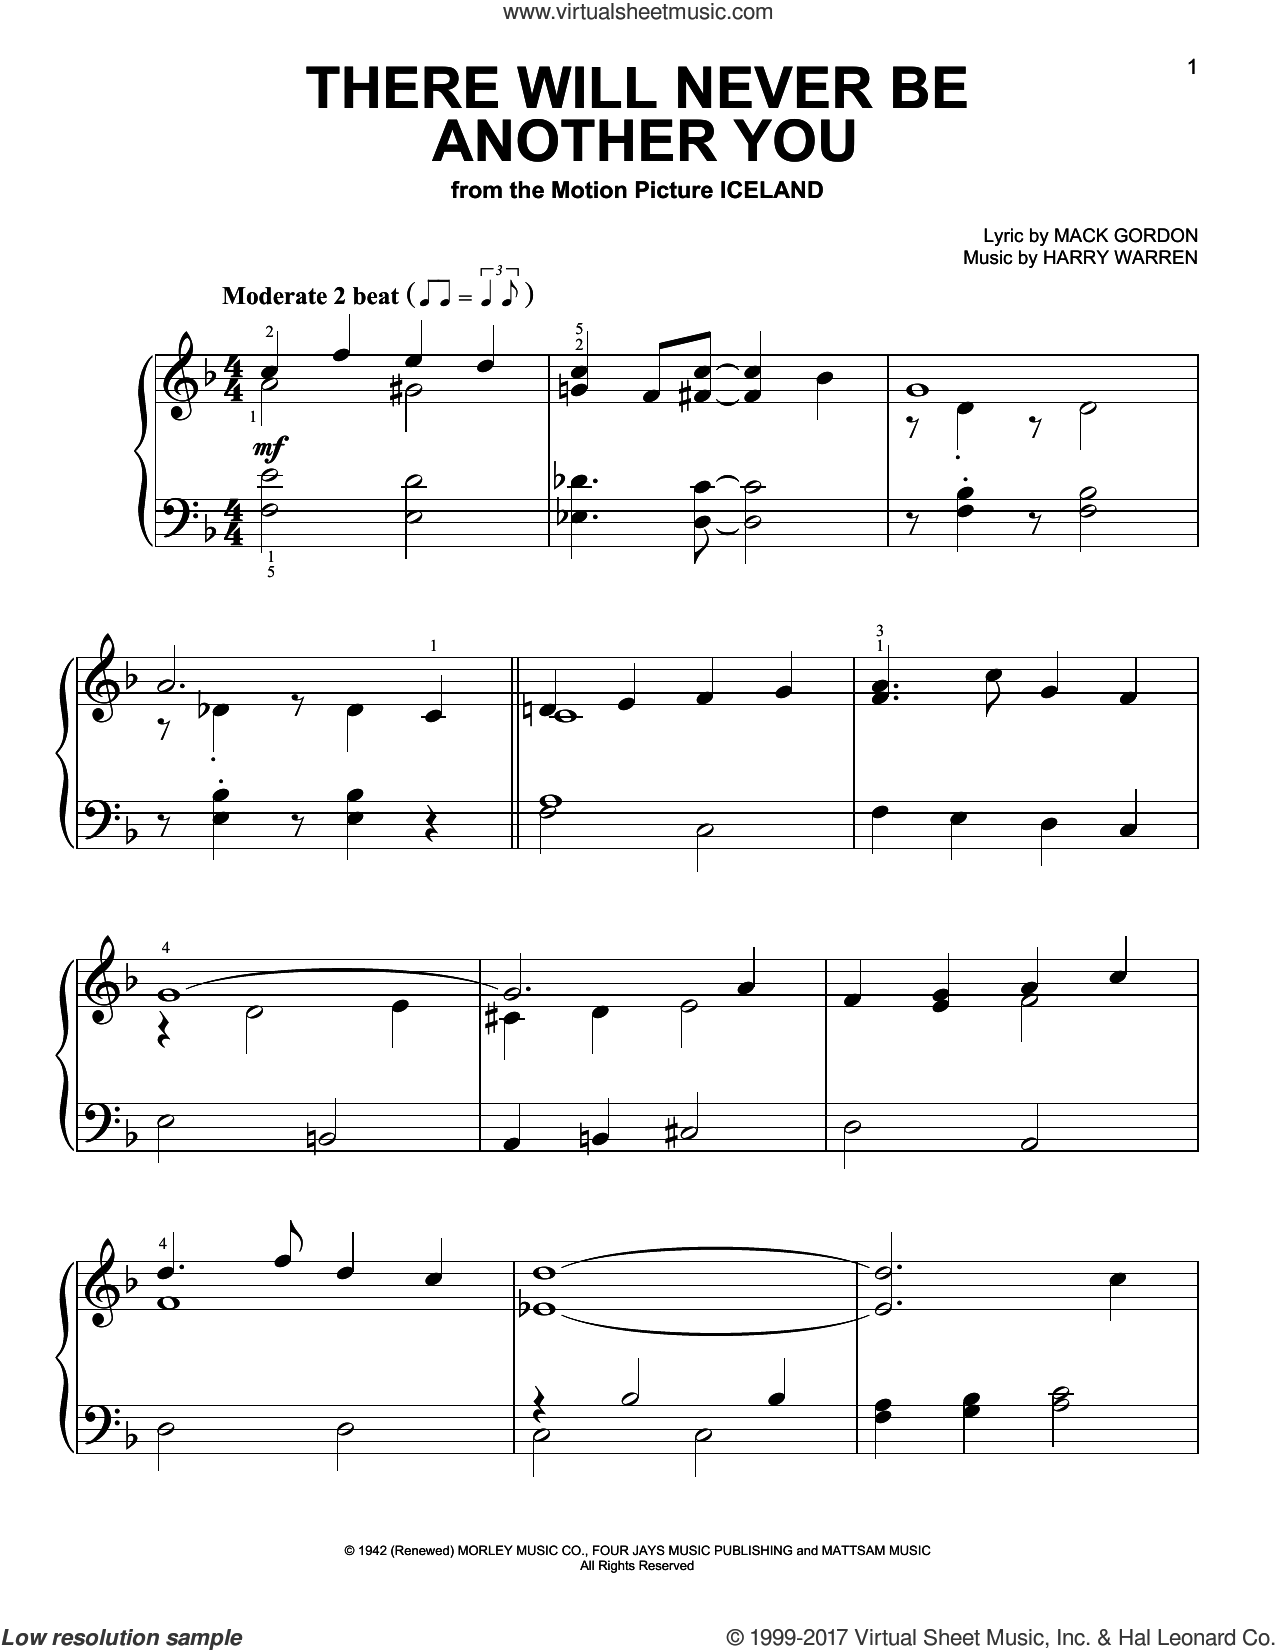 There Will Never Be Another You sheet music for piano solo by Mack Gordon and Harry Warren, easy piano. Score Image Preview.